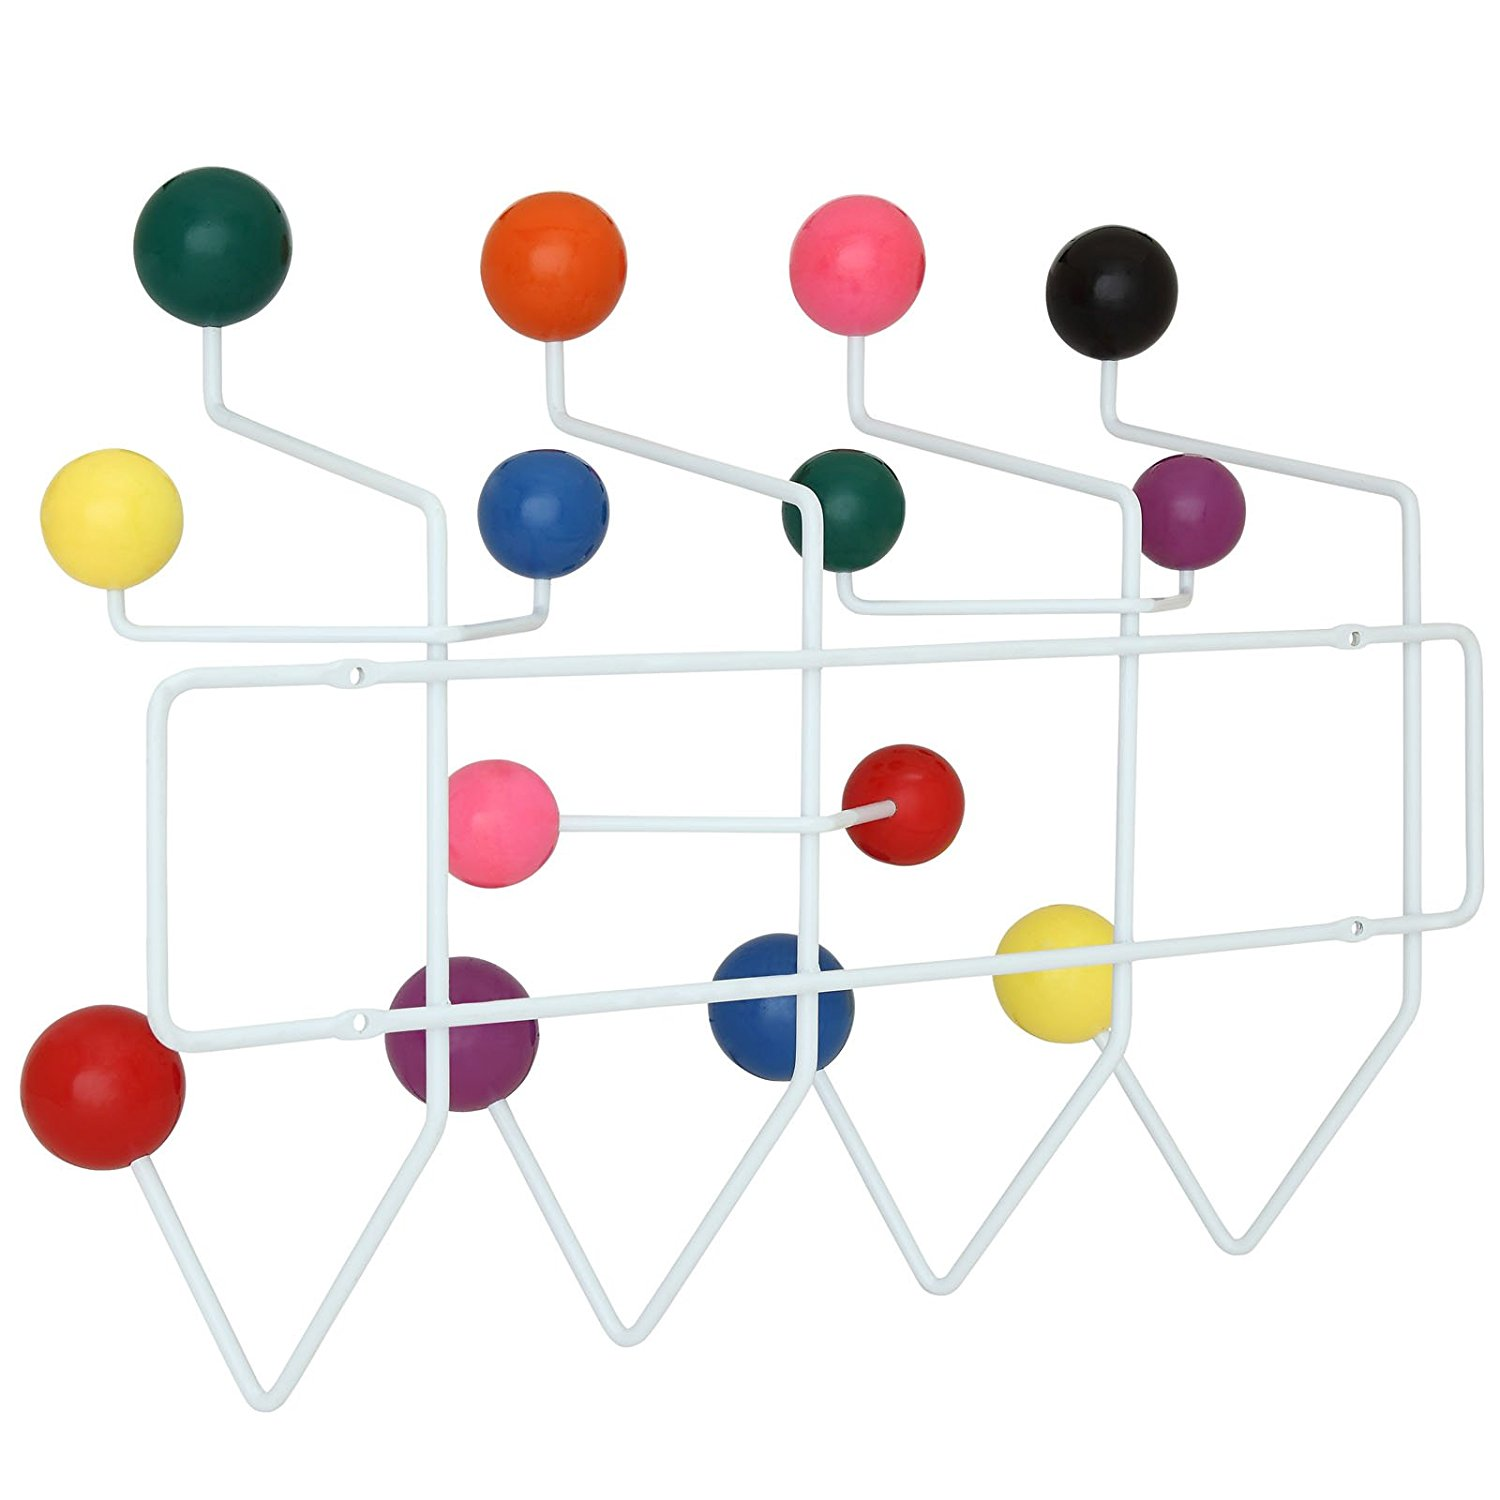 Amazon.com: Modway Coat Rack, Gumball: Home & Kitchen.